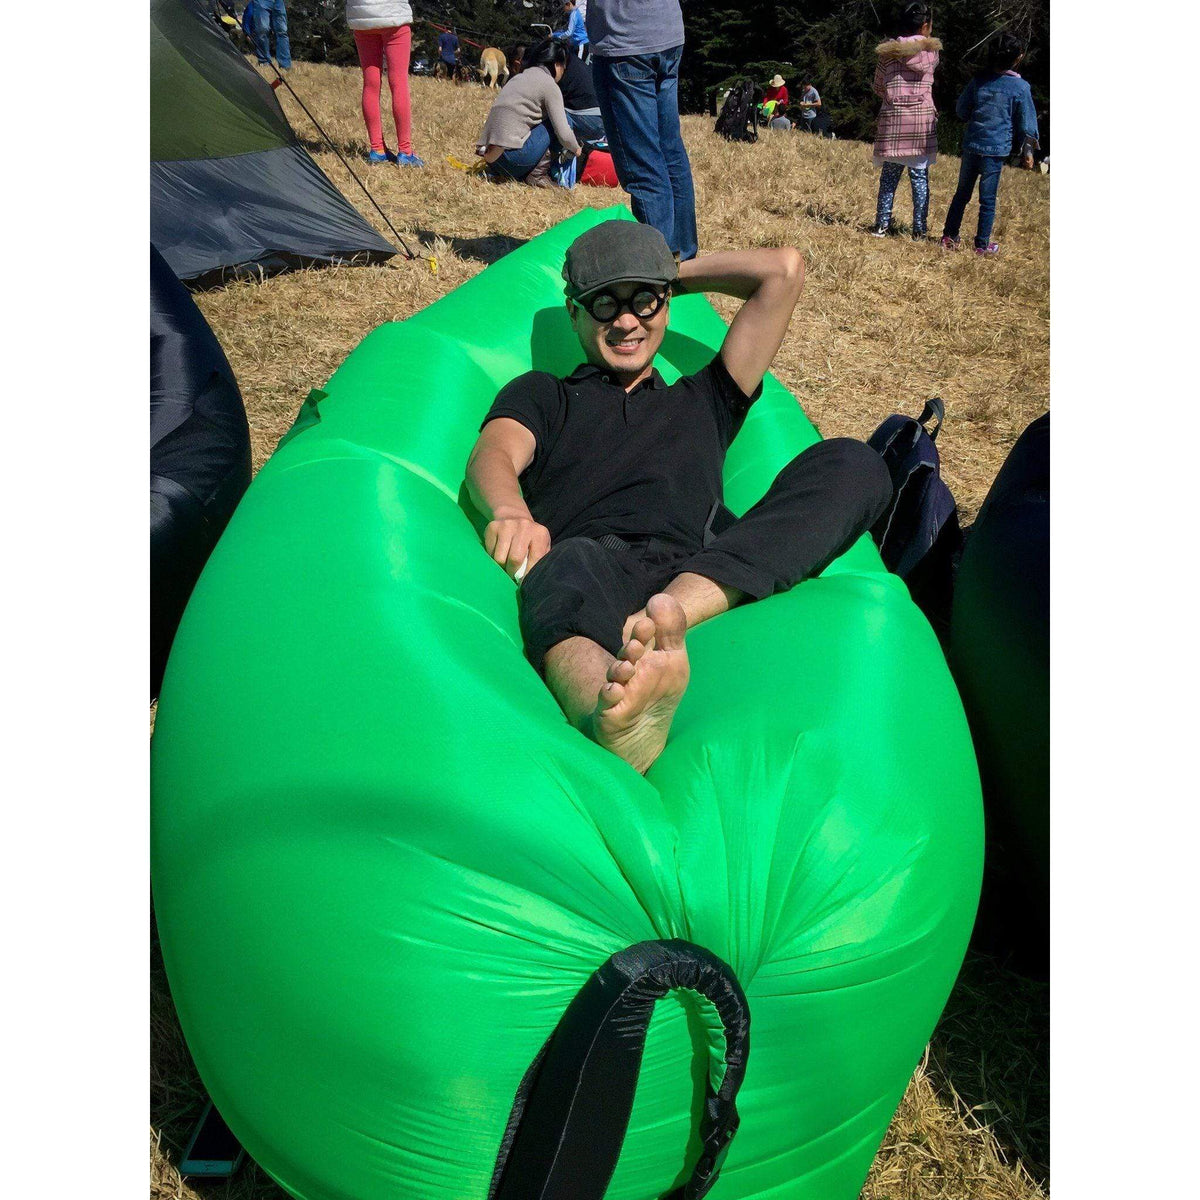 Easy Inflate Portable Sofa Lounge - Green